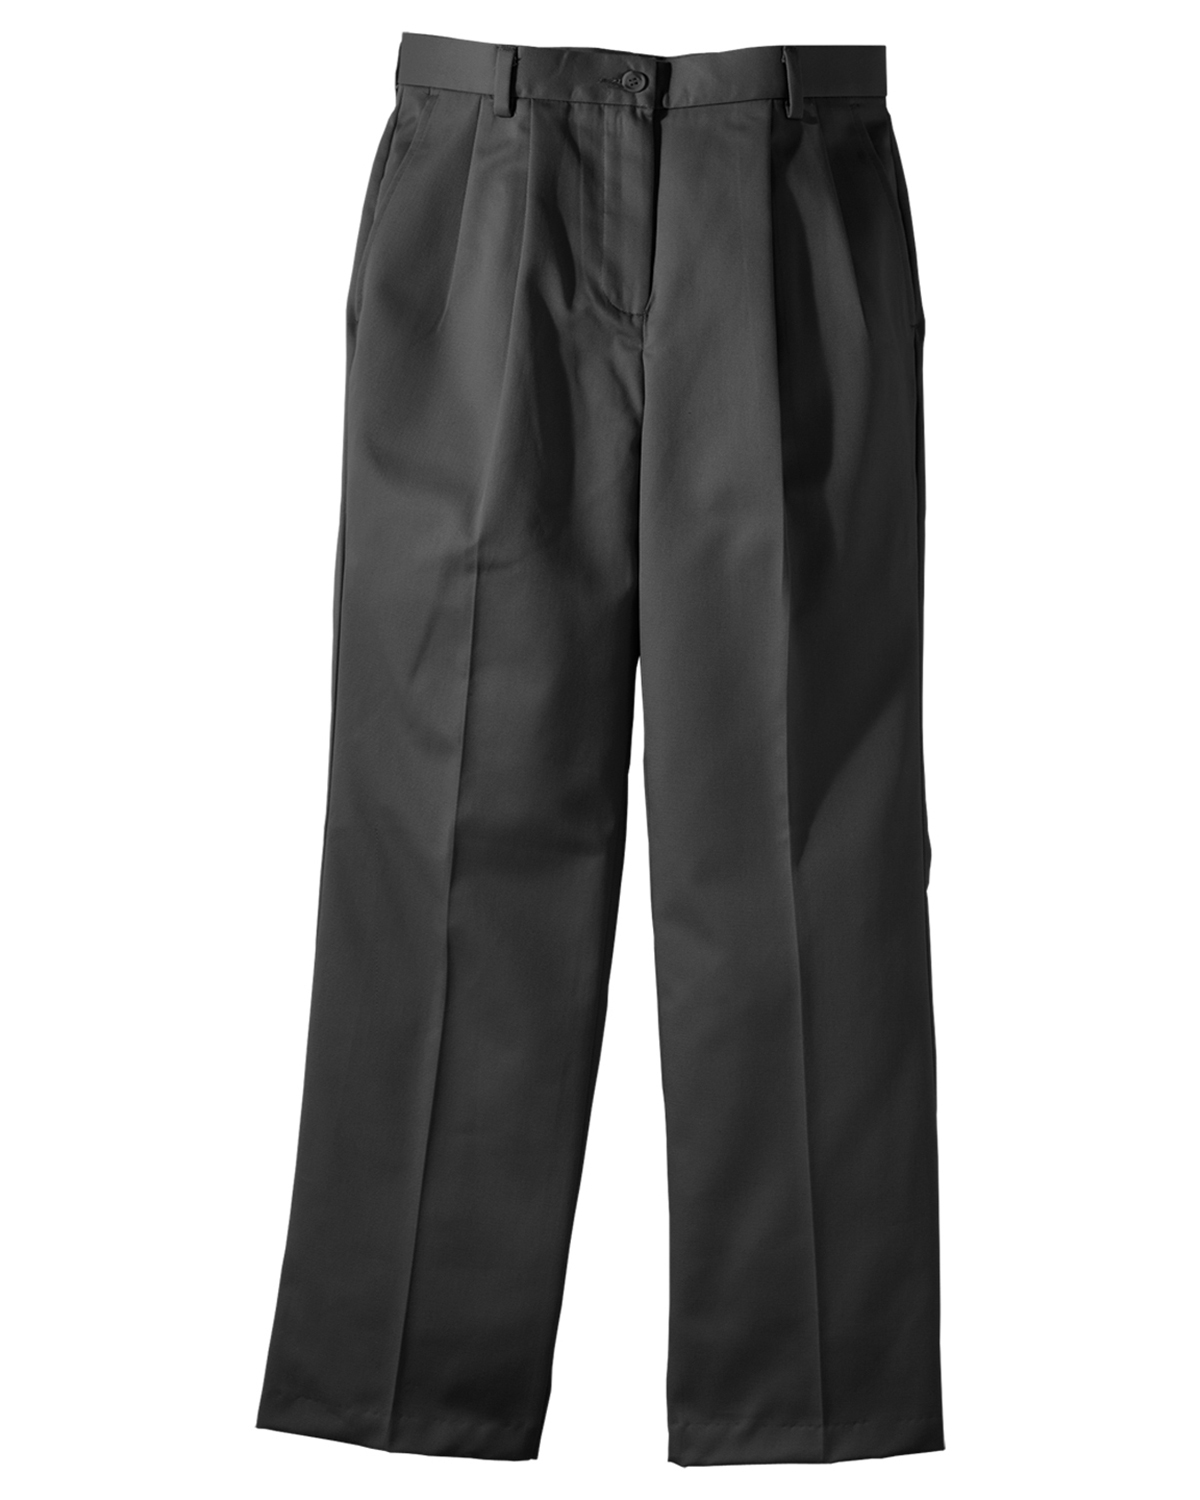 Edwards 8639 Women's Cotton Pleated Chino Pant at GotApparel